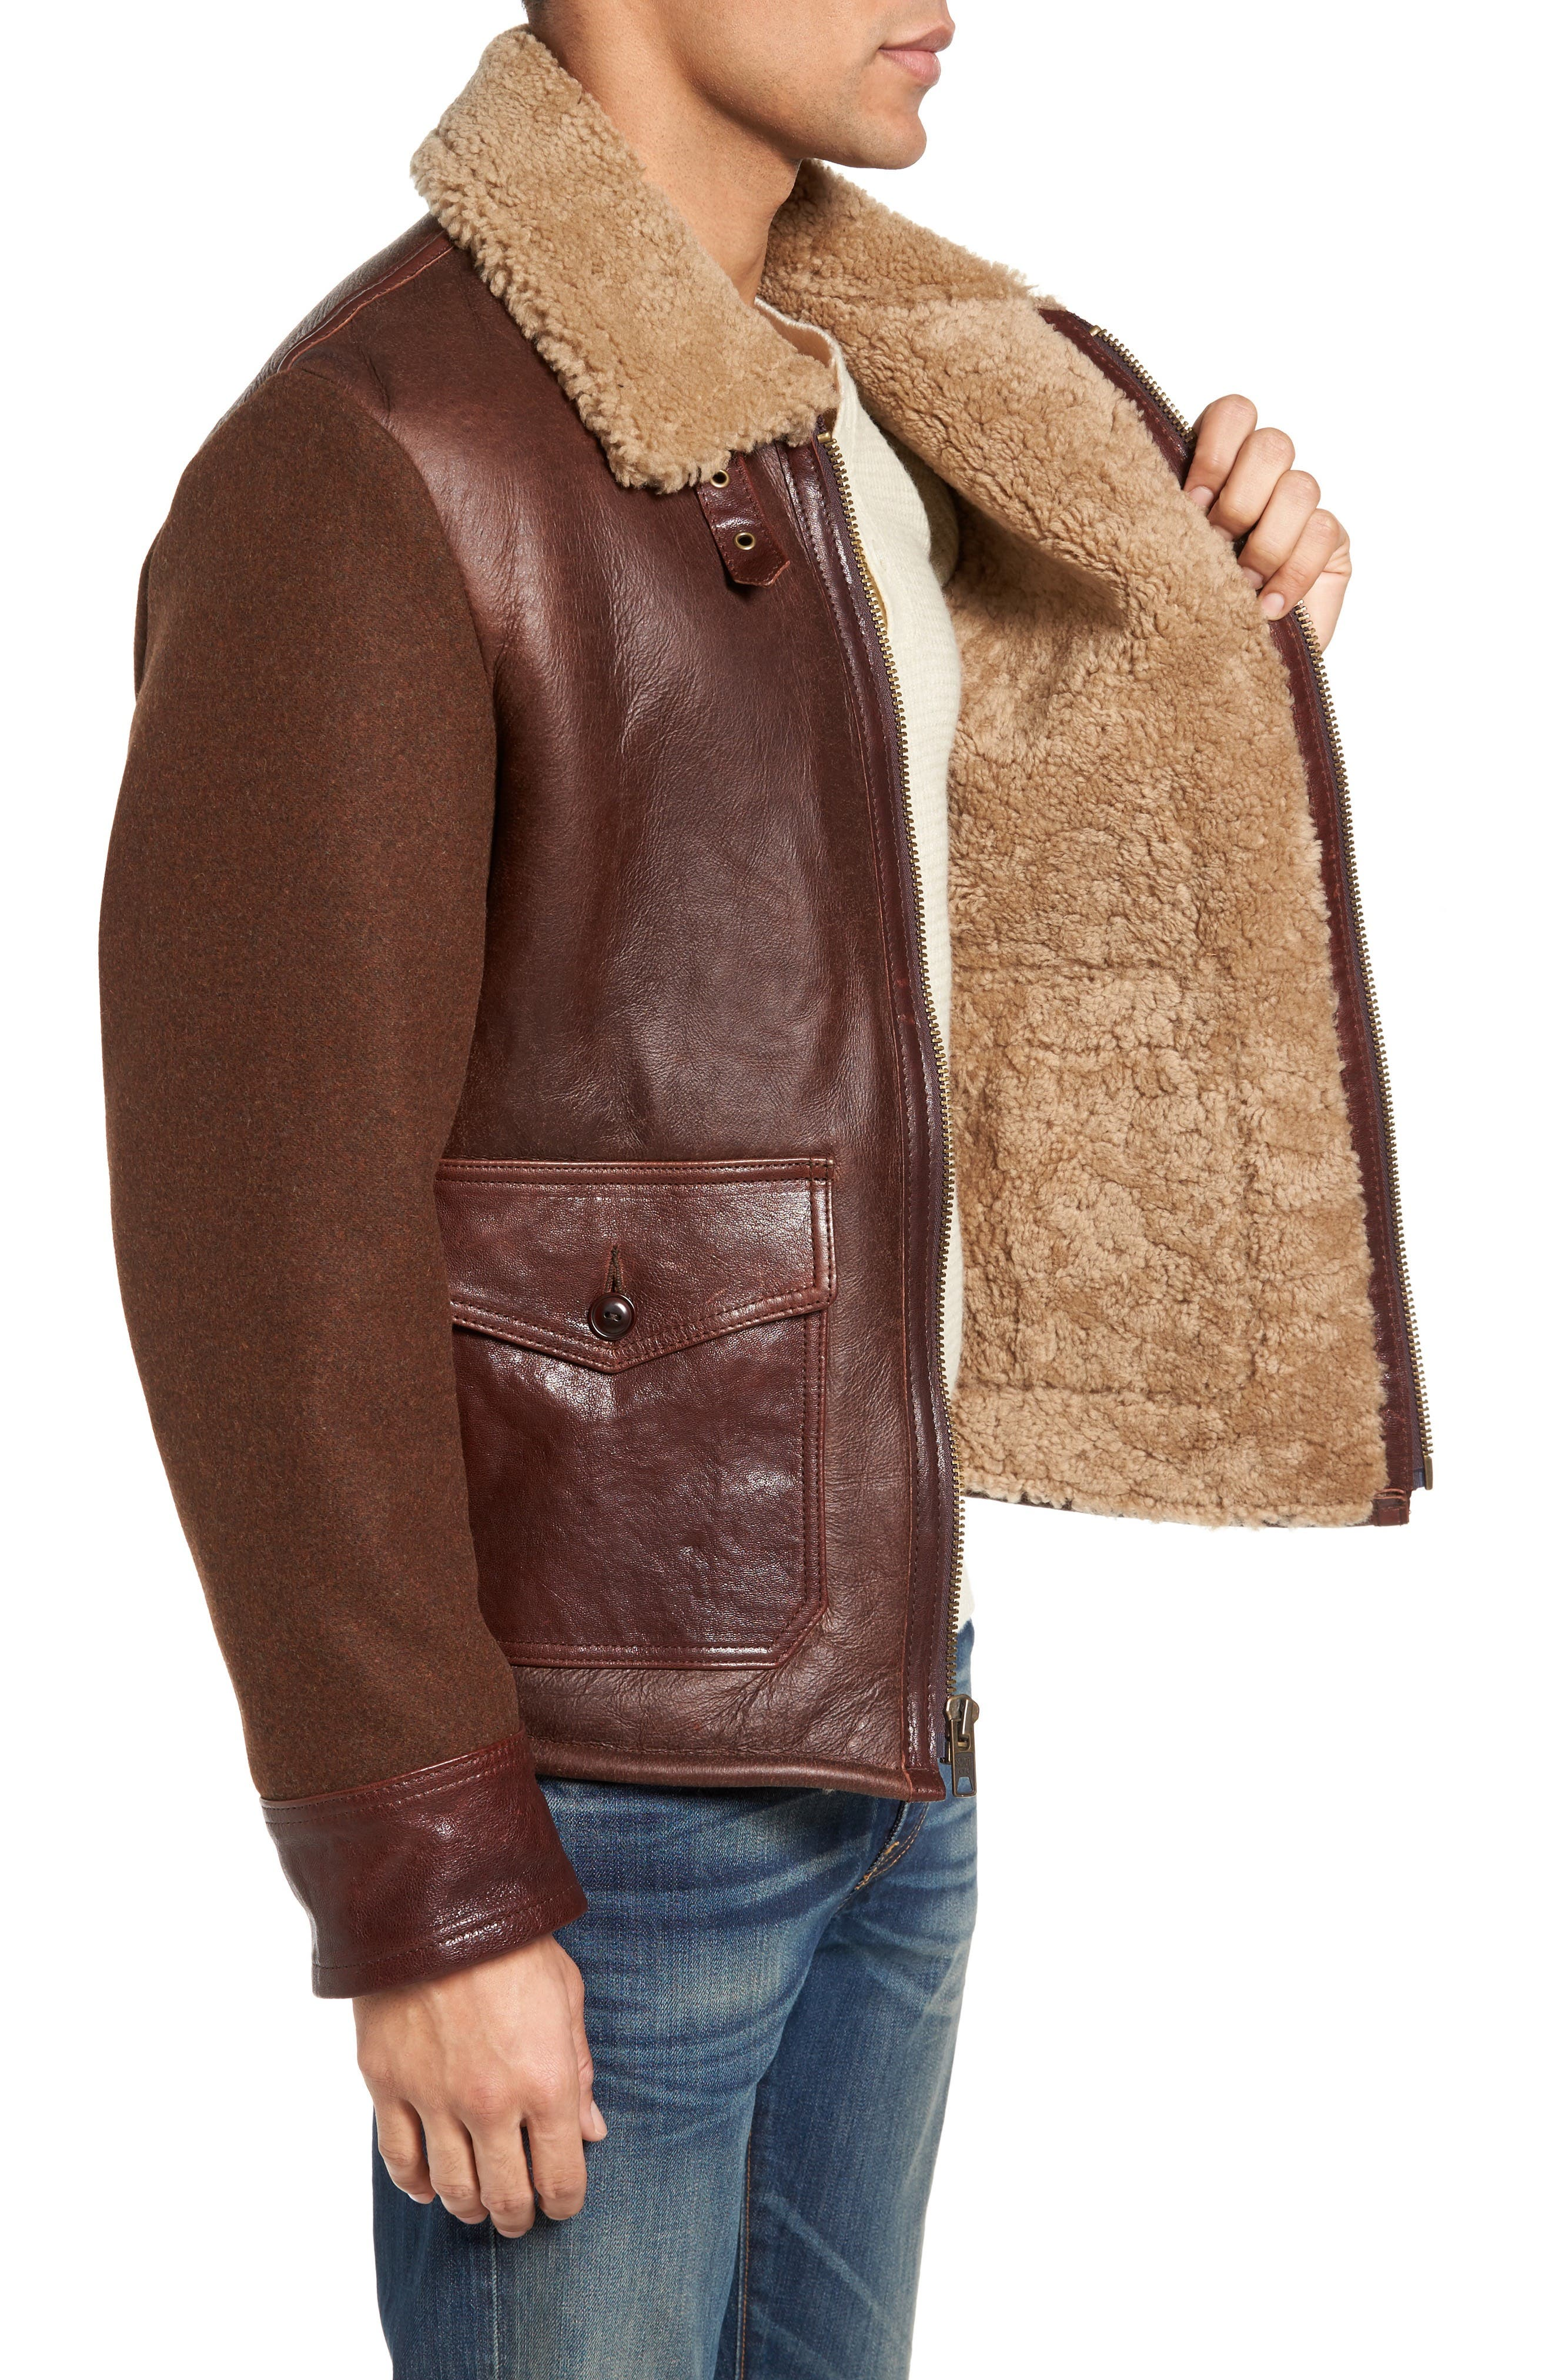 Mixed Media Flight Jacket with Genuine Shearling Collar & Lining,                             Alternate thumbnail 3, color,                             200